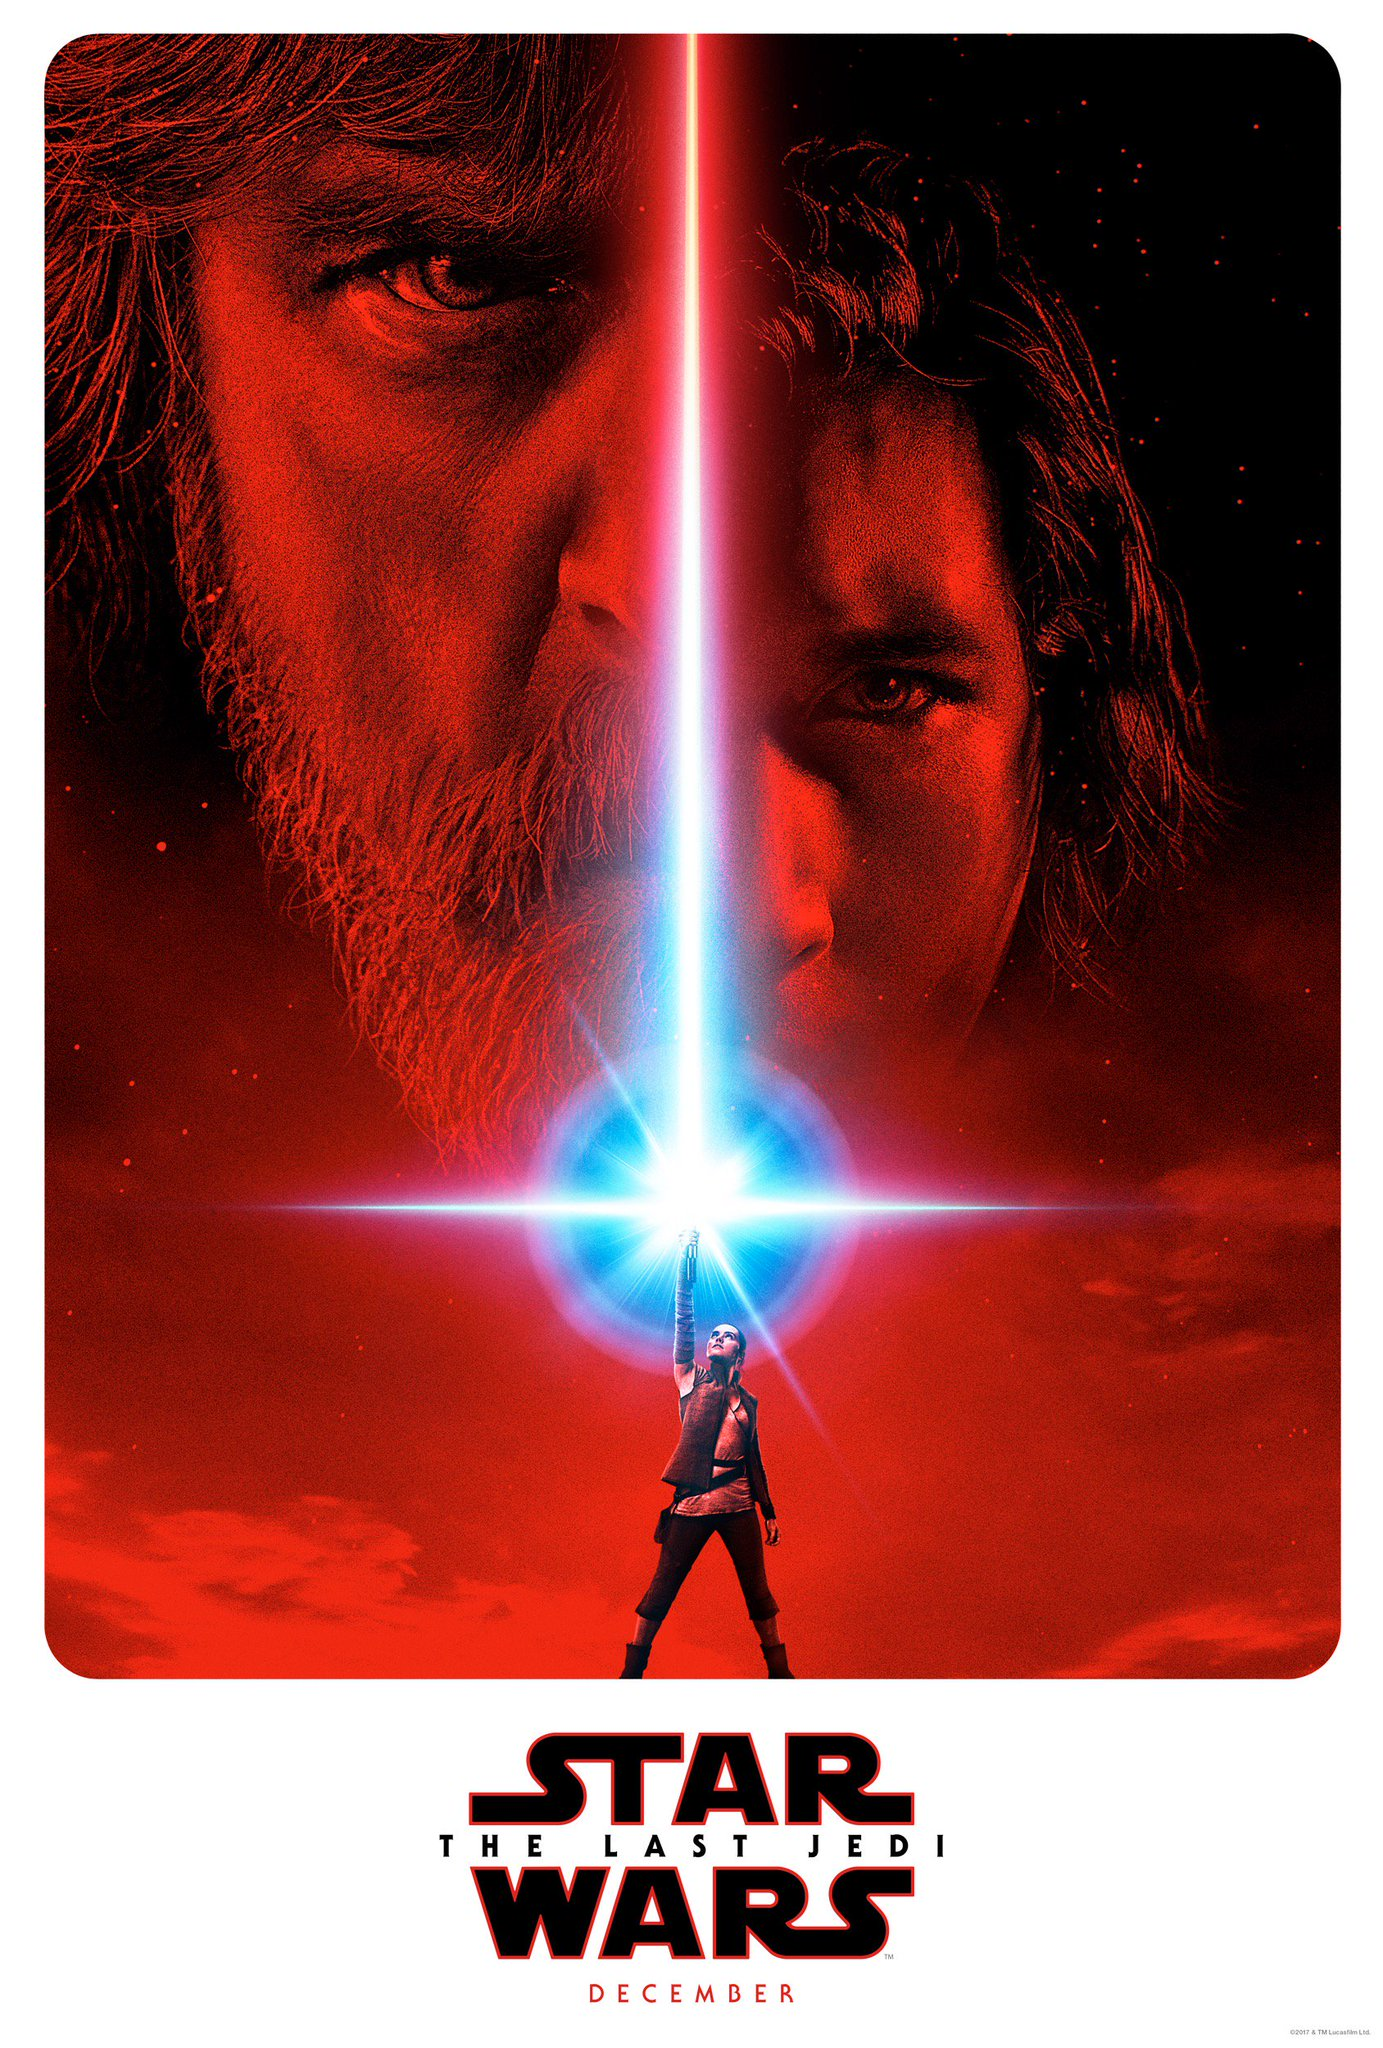 14042017_Star_Wars_The_Last_Jedi_poster